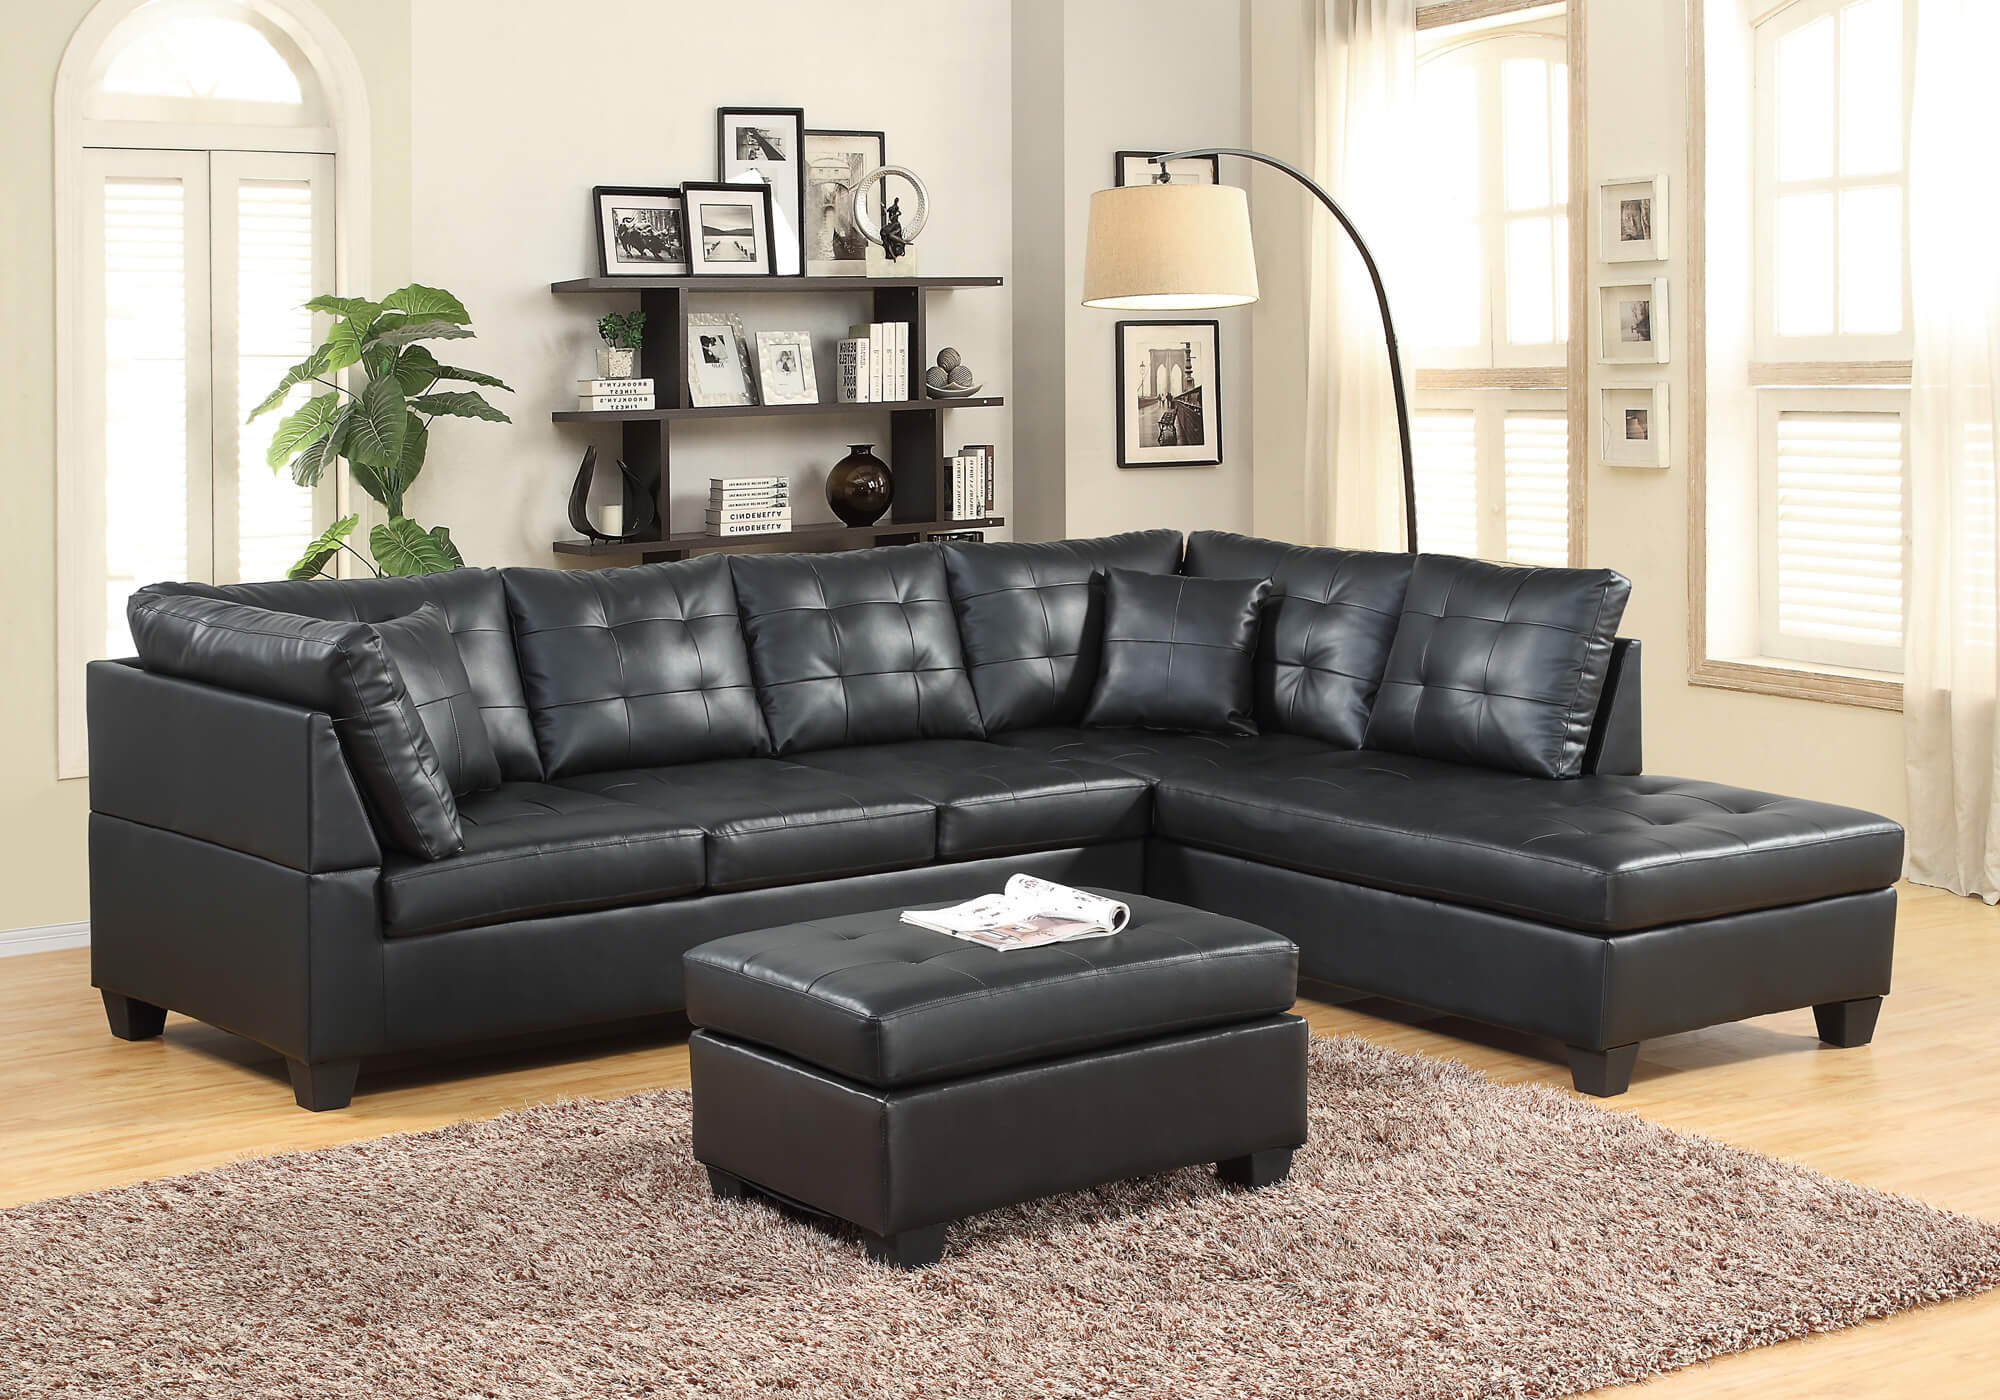 Black leather like sectiona sectional sofa sets for Leather living room sets